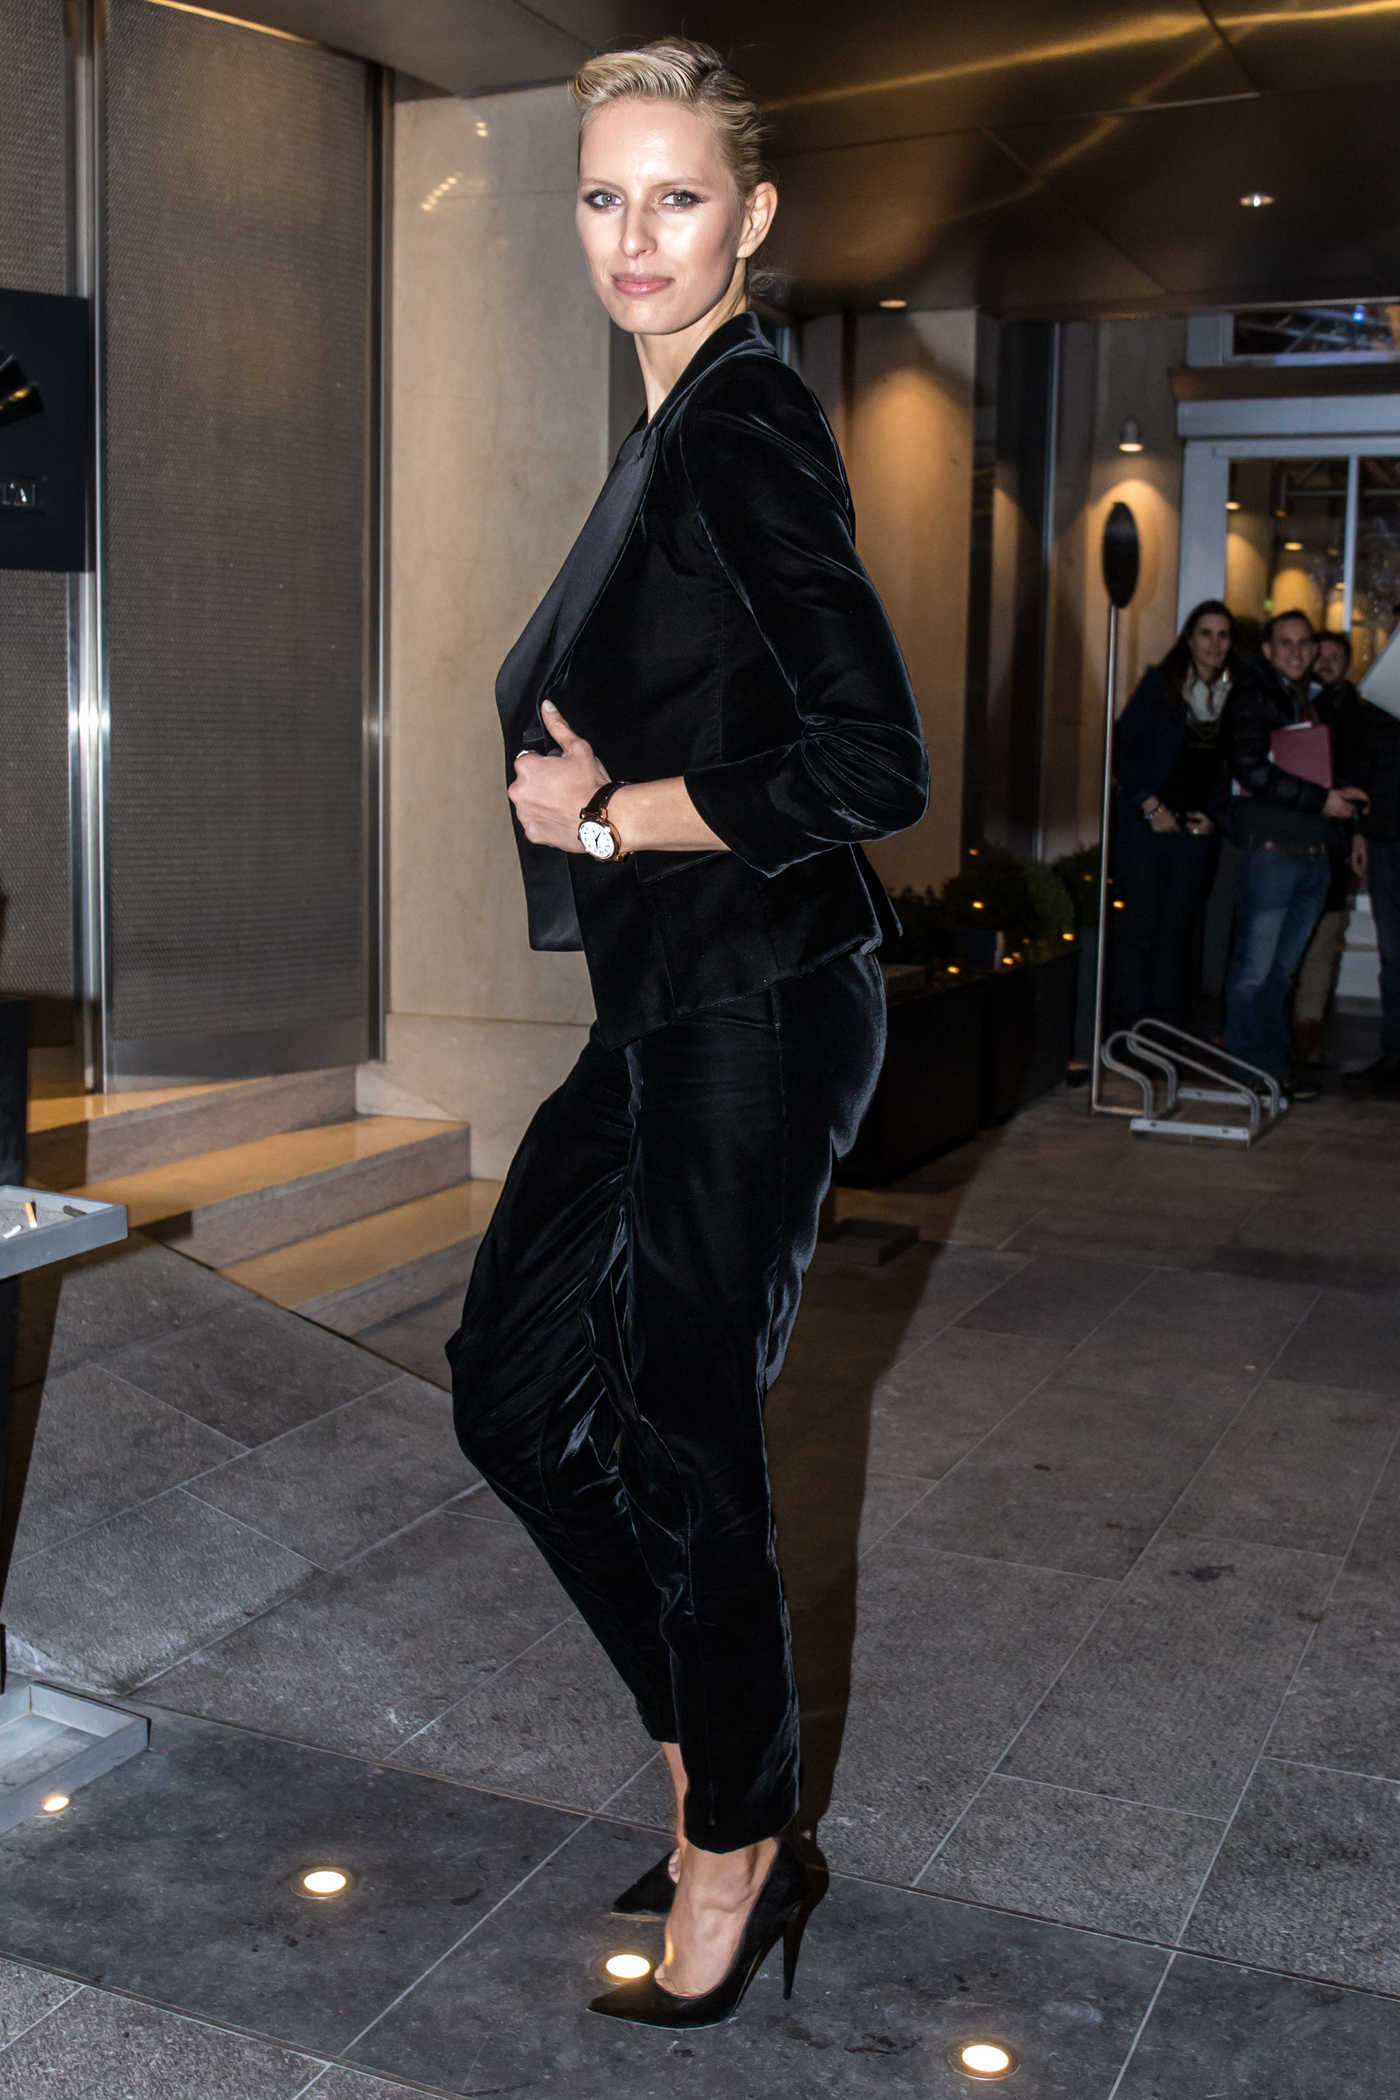 Karolina Kurkova Arrives at the Mandarin Oriental Hotel in Geneva 01/17/2018